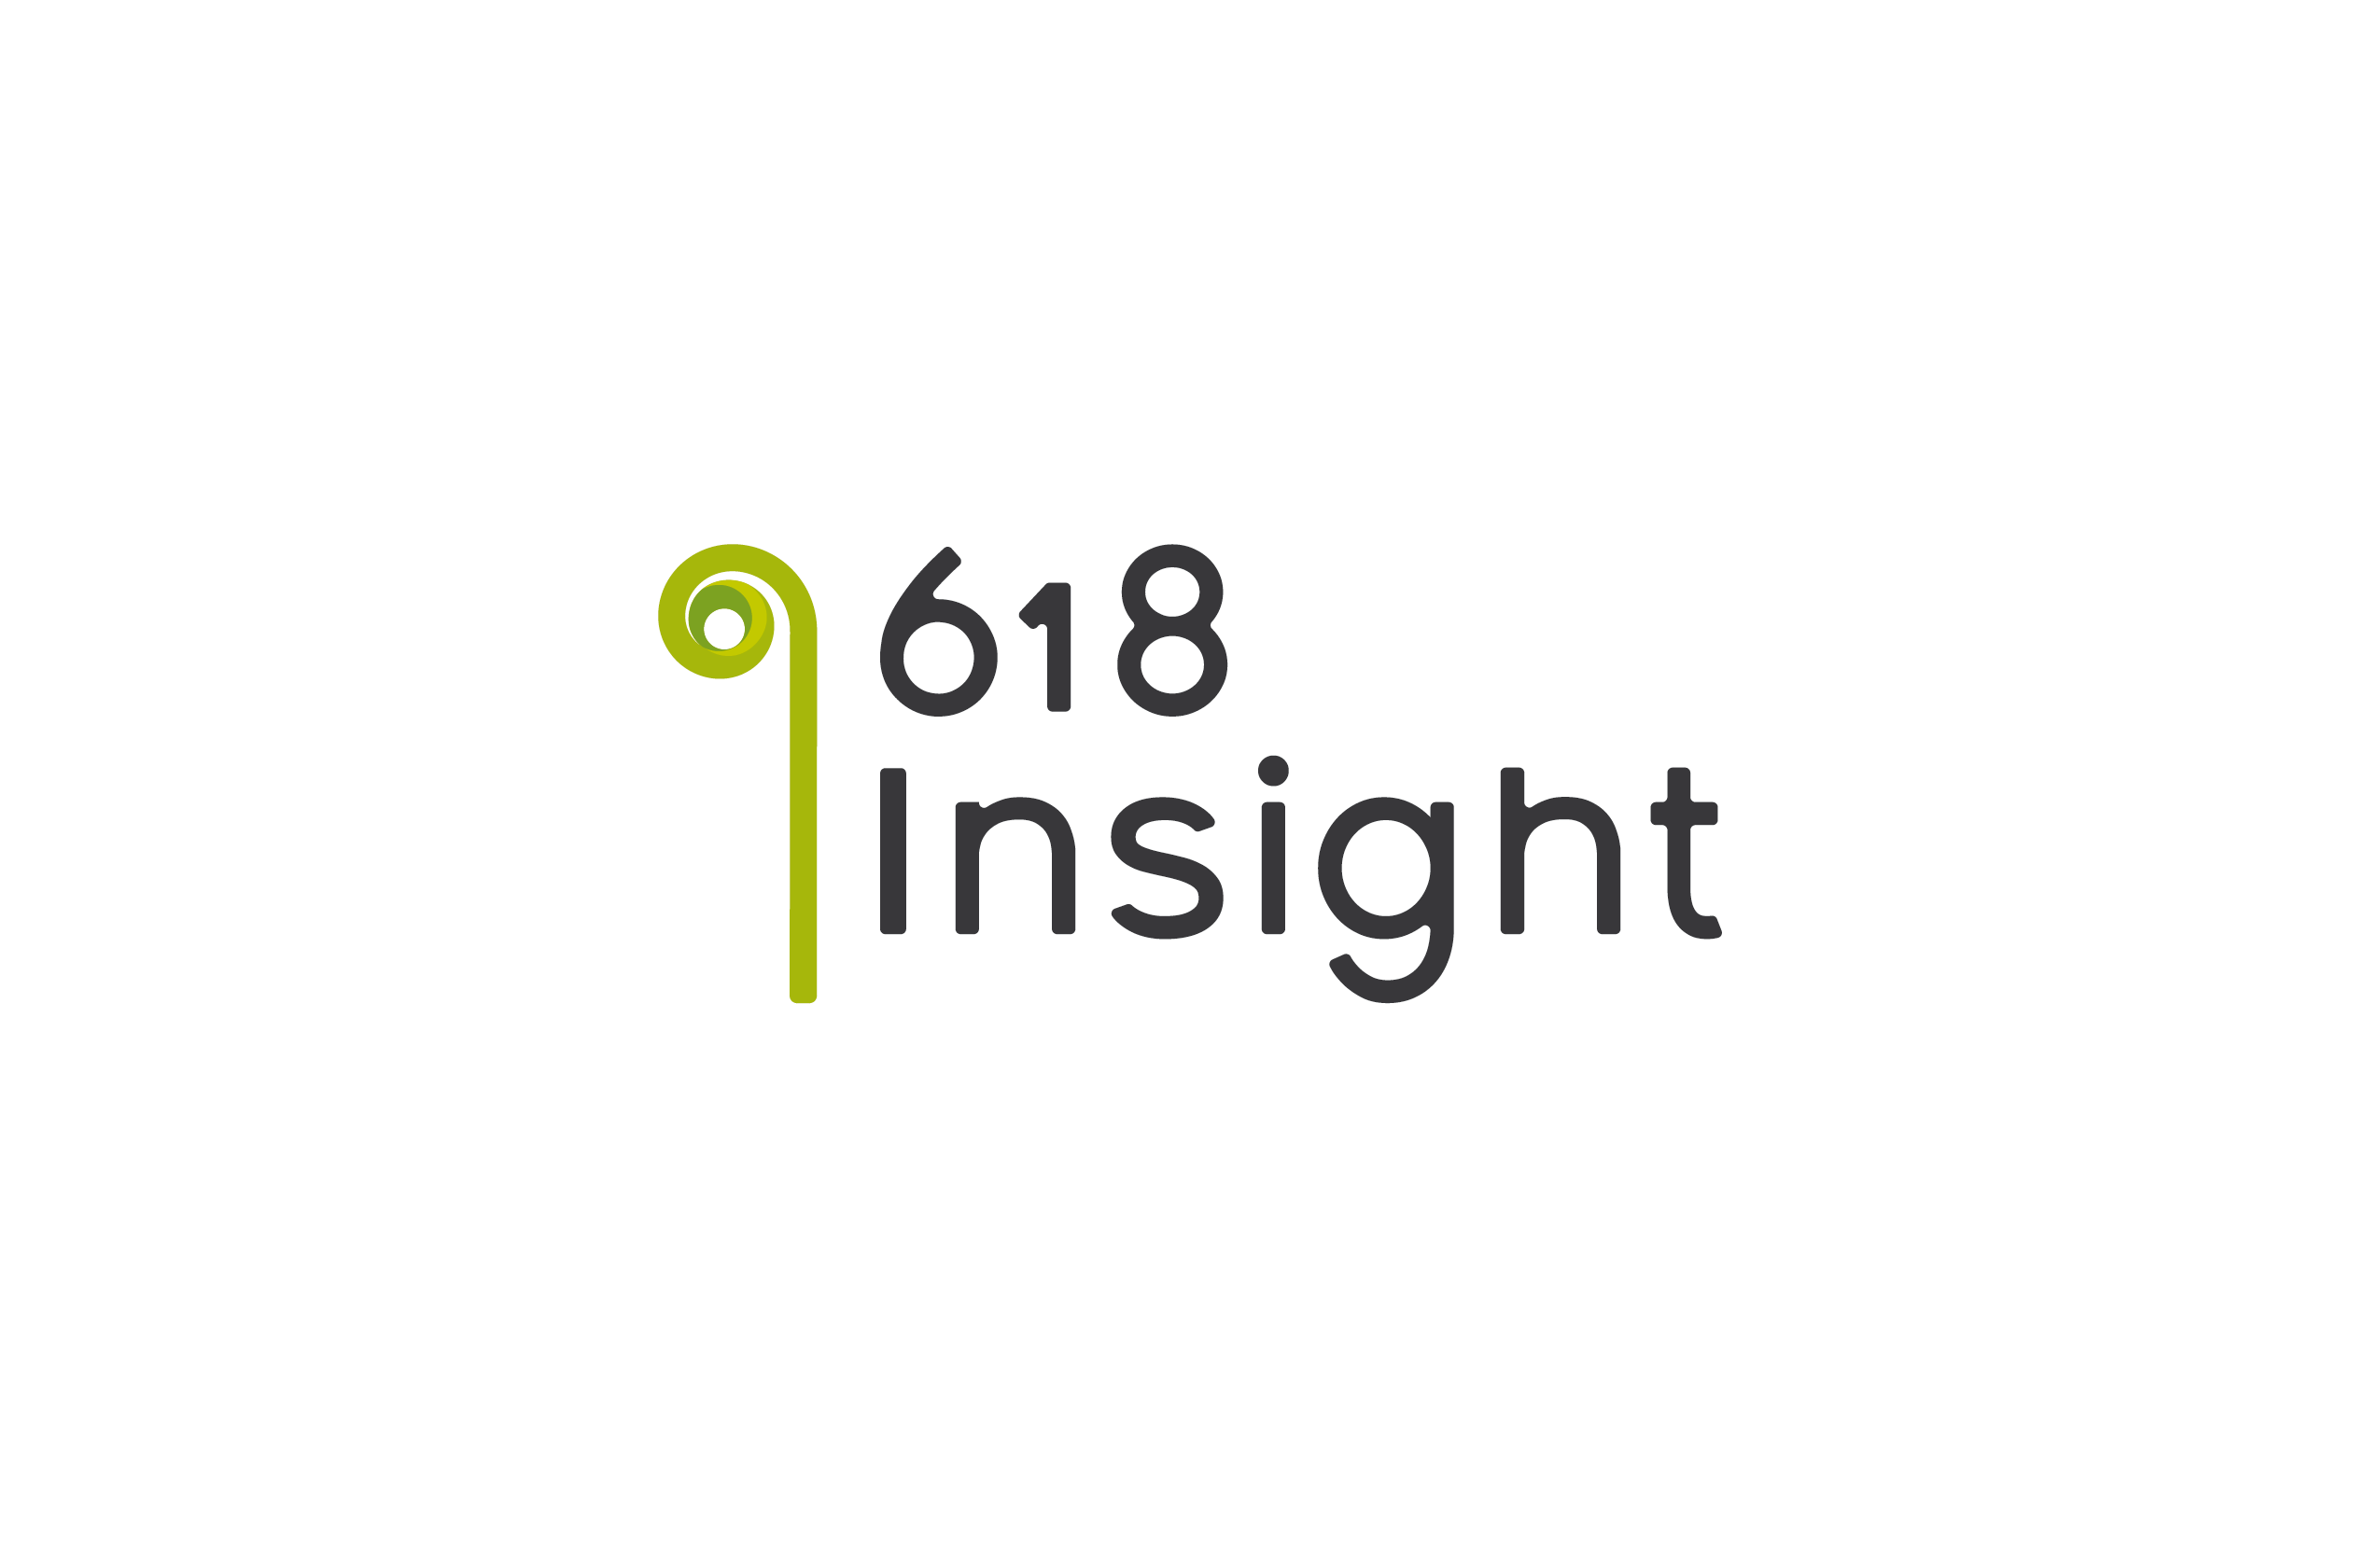 Create an organic brand to support 618 Insight